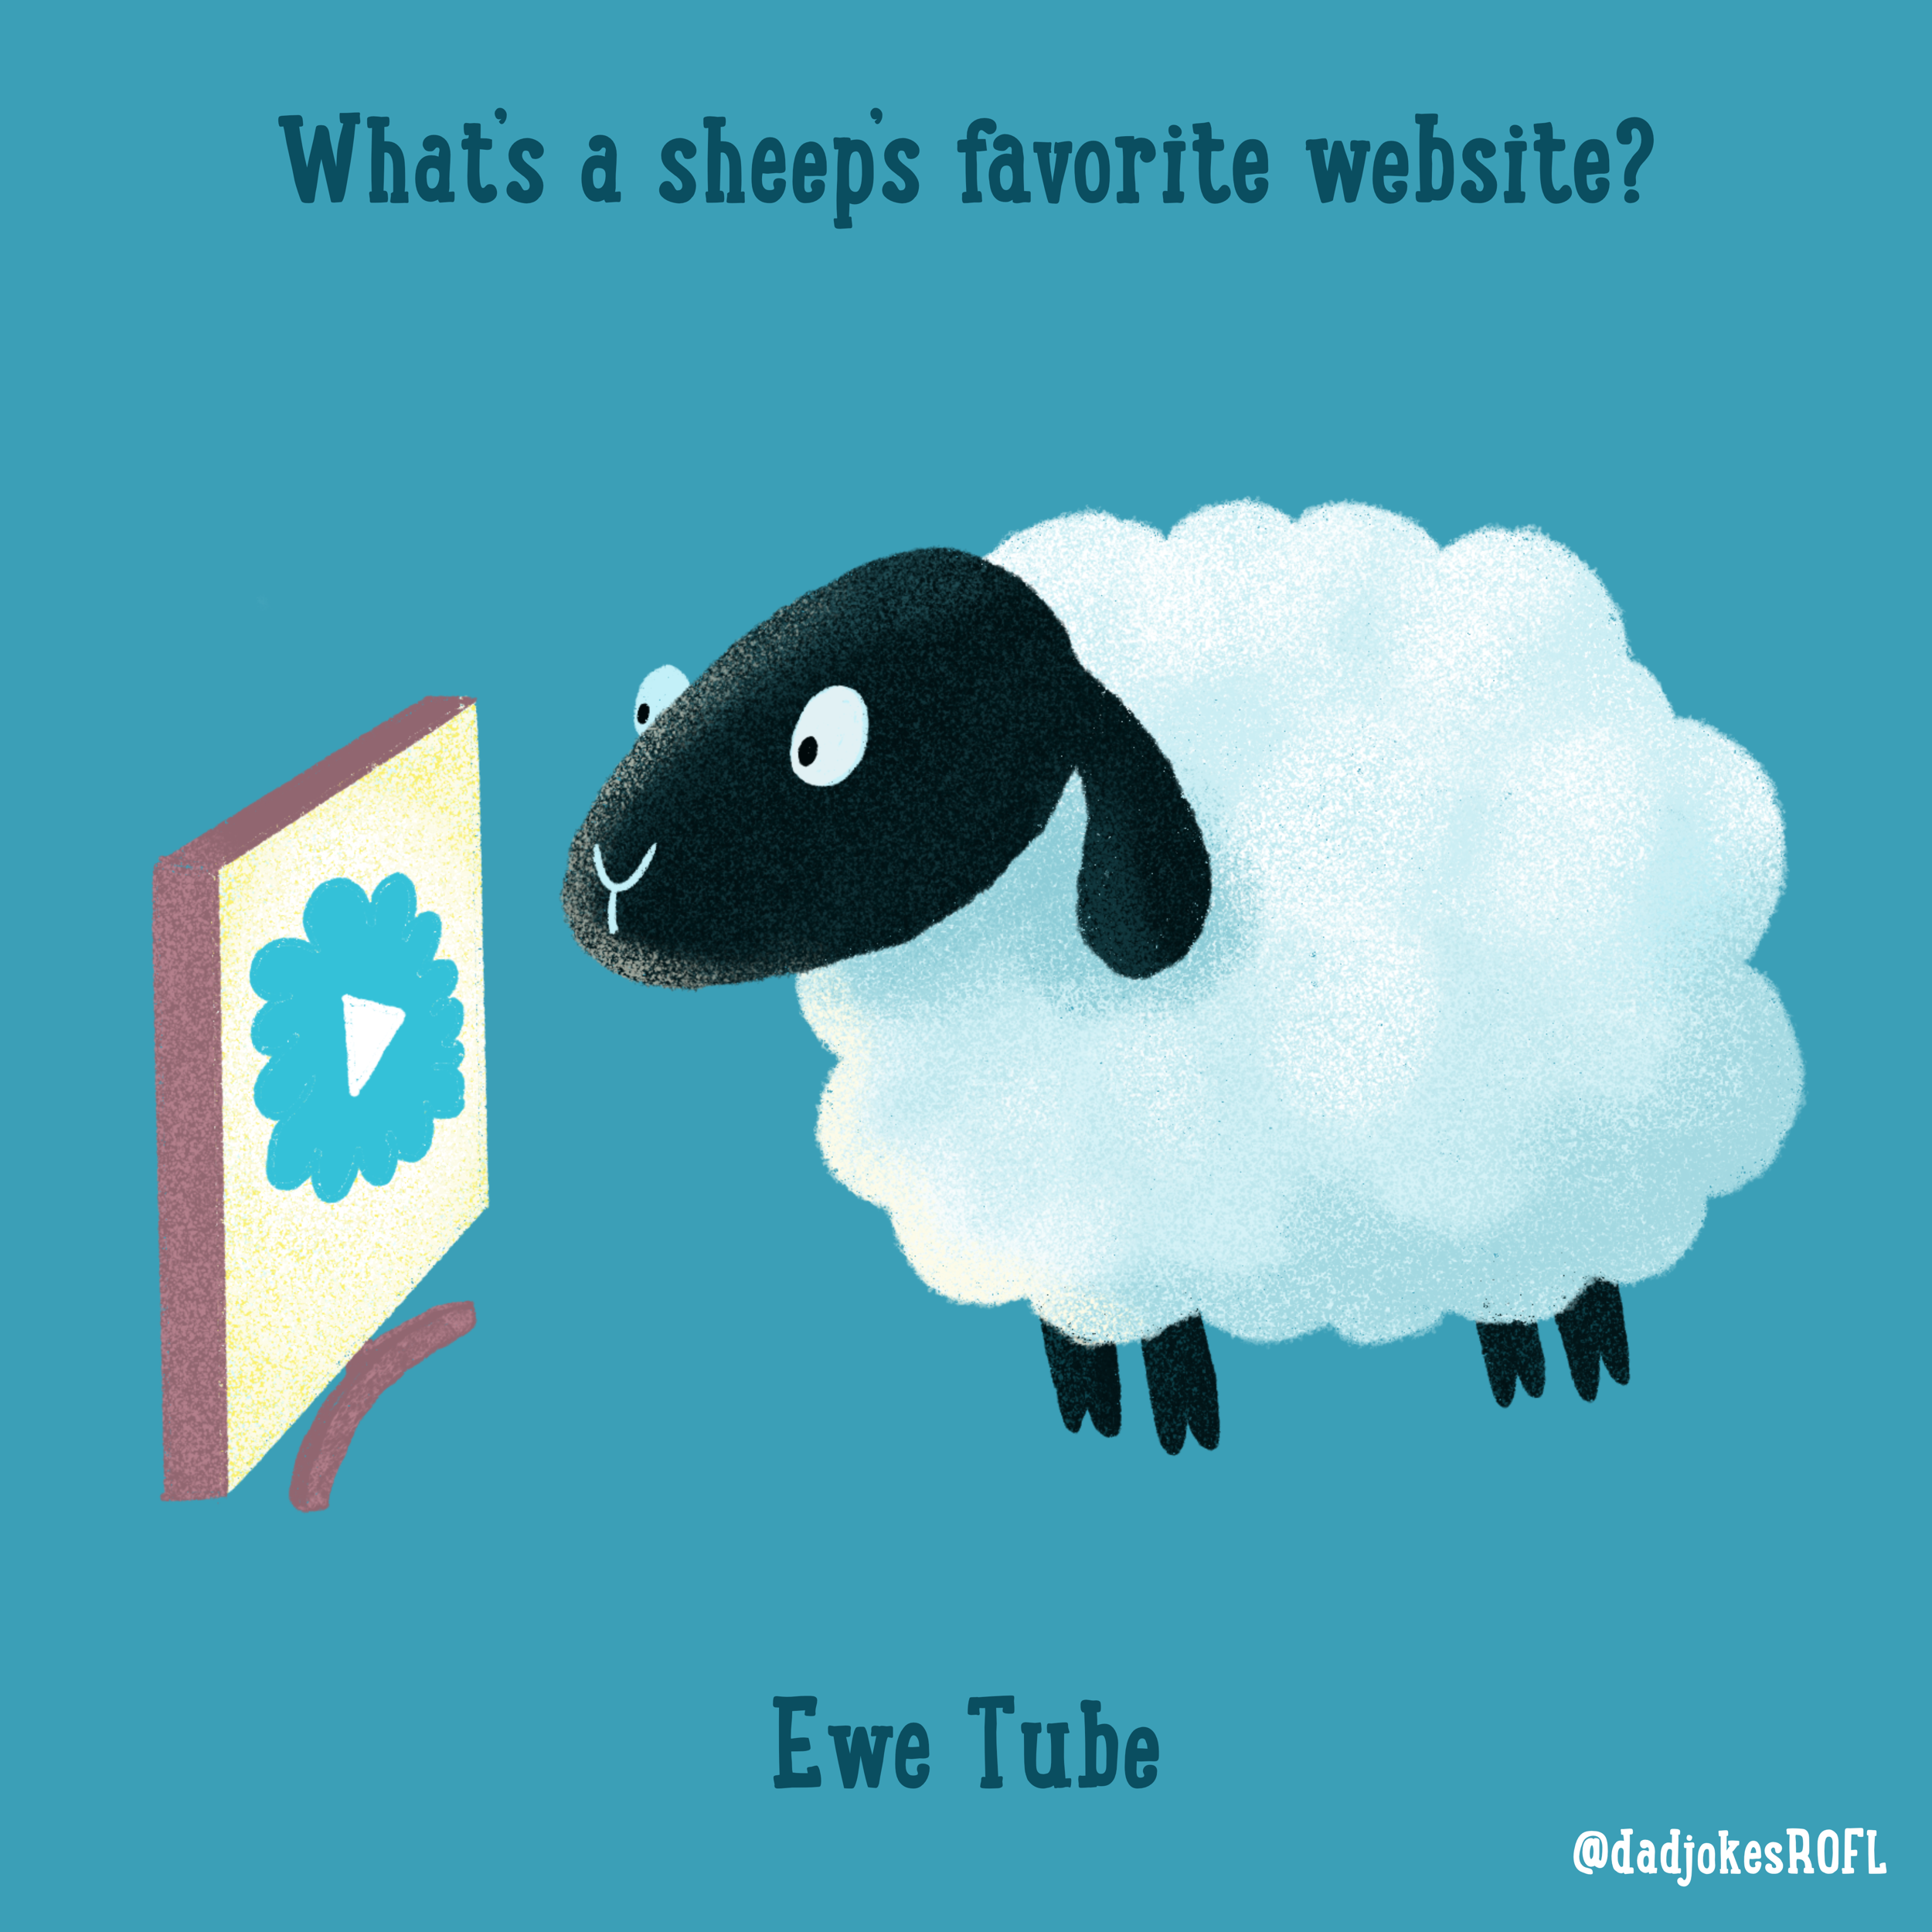 What's a sheep's favorite website? Ewe Tube